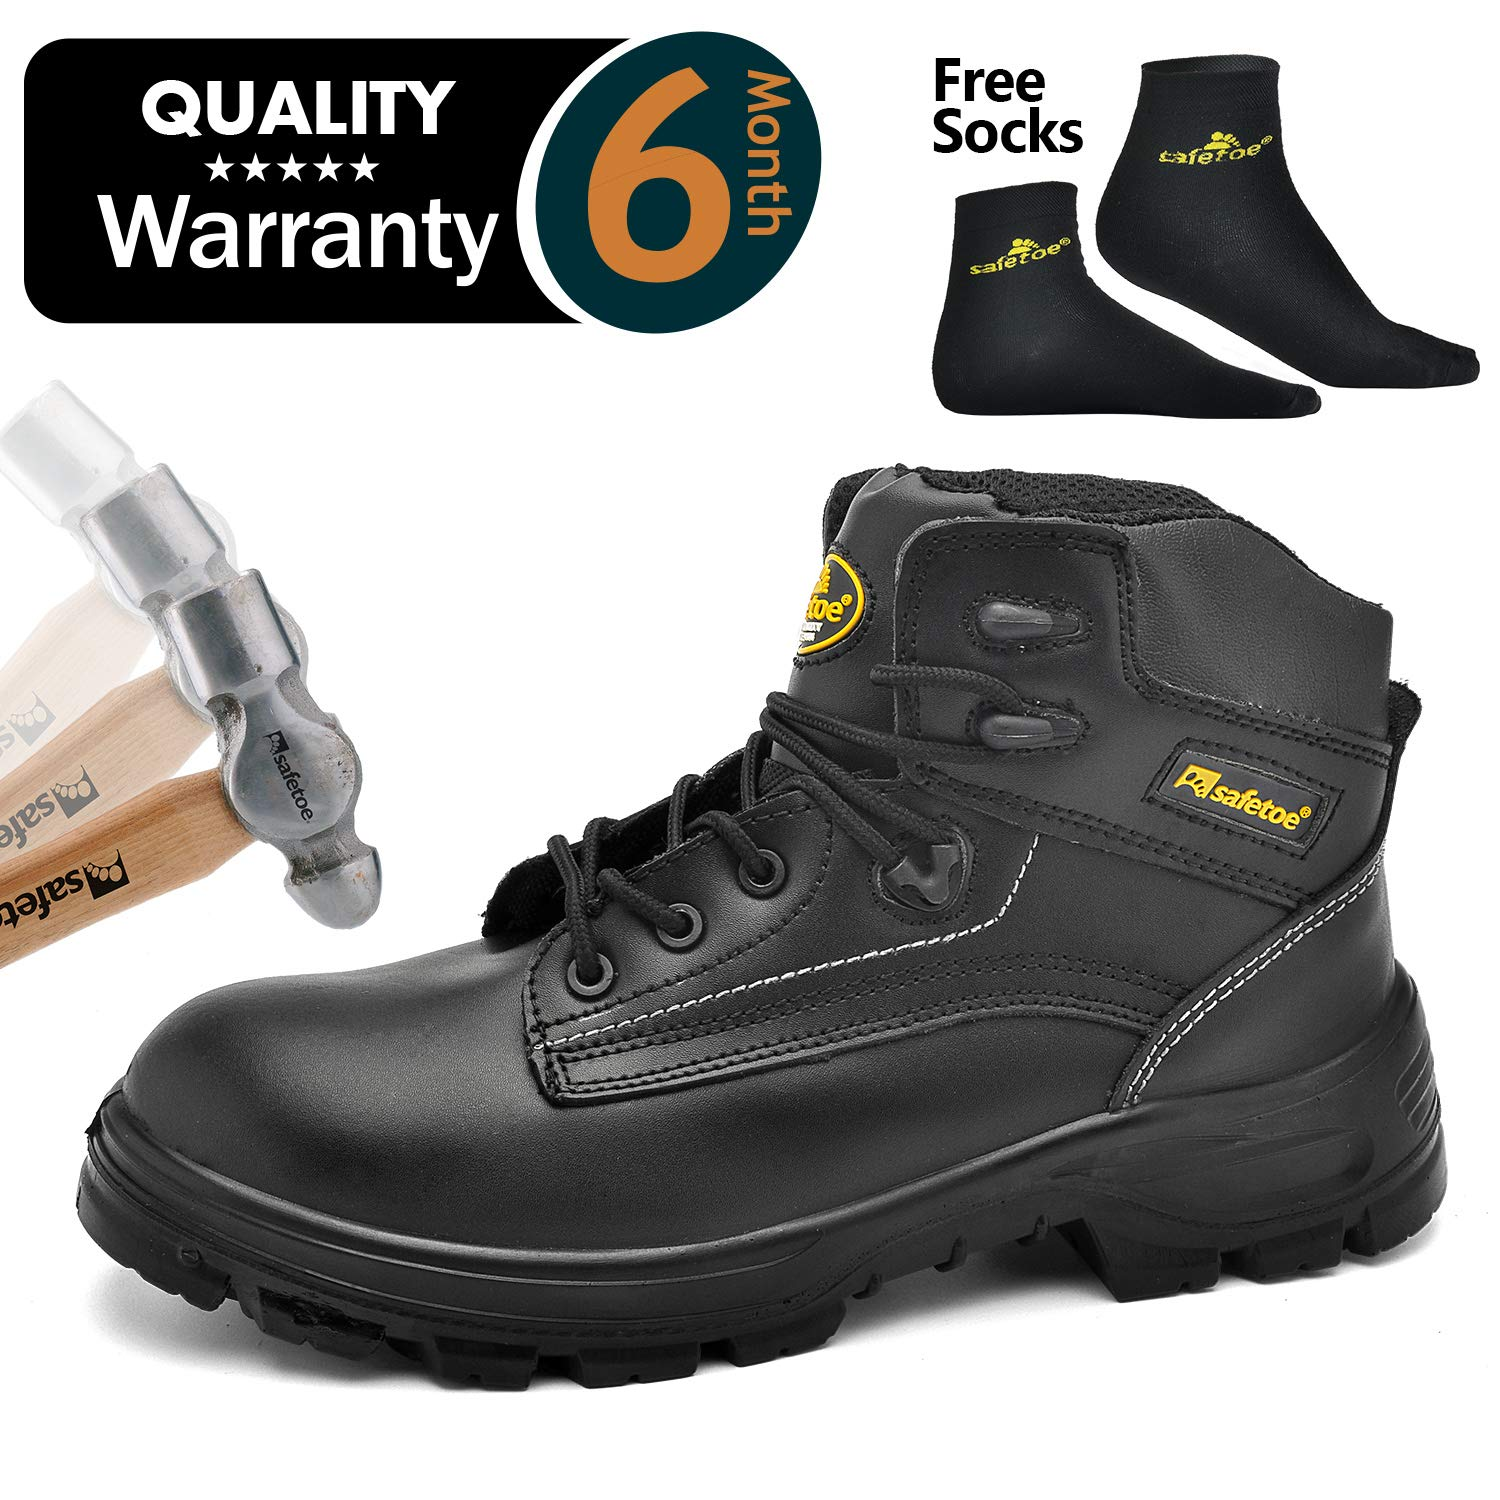 SAFETOE Mens Safety Boots Work Shoes - M8356B Black Waterproof Leather Work Boots Steel Toe Safety Shoes SF8356B